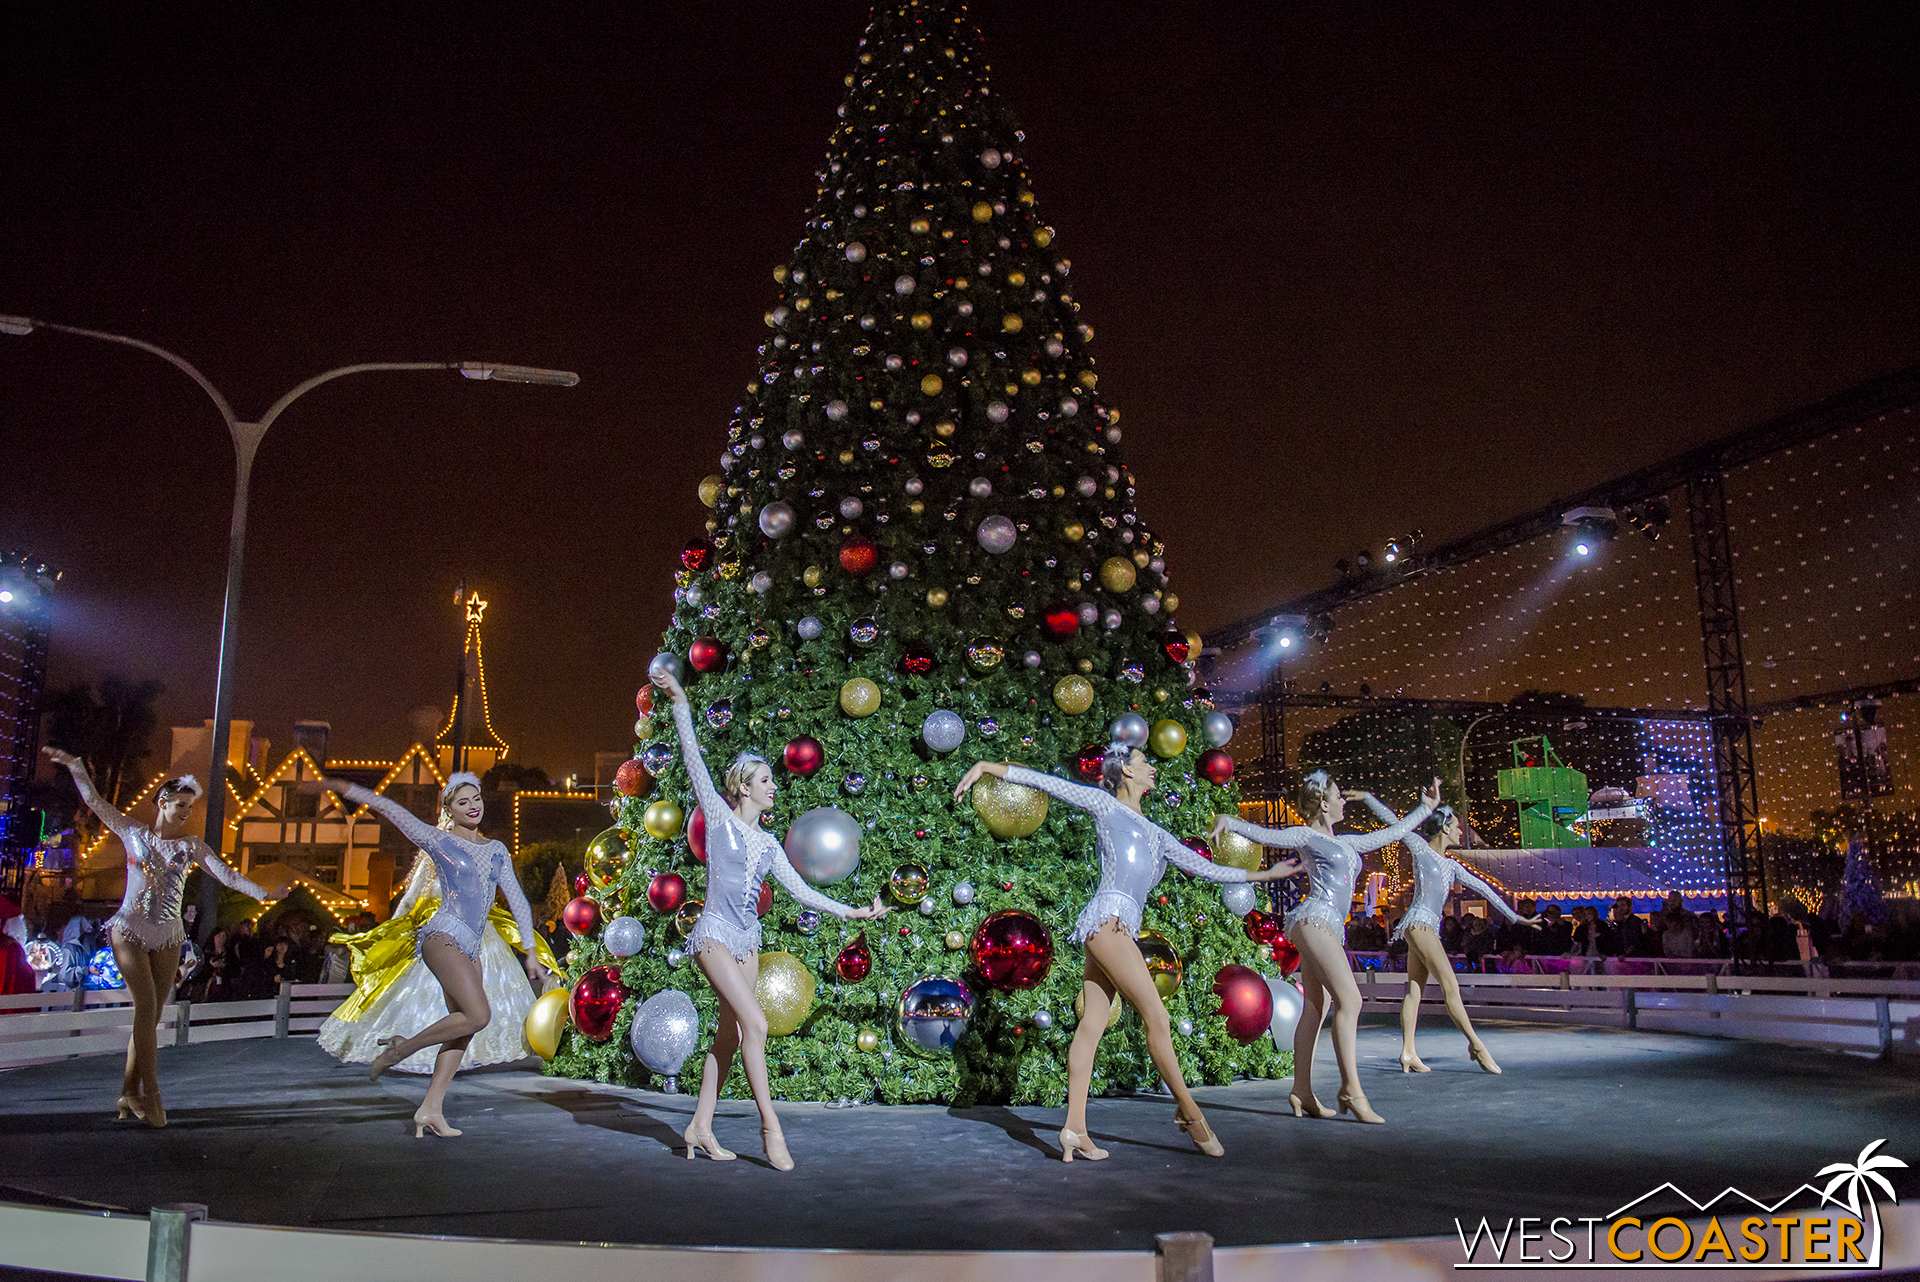 Dancers start off the tree lighting ceremony.